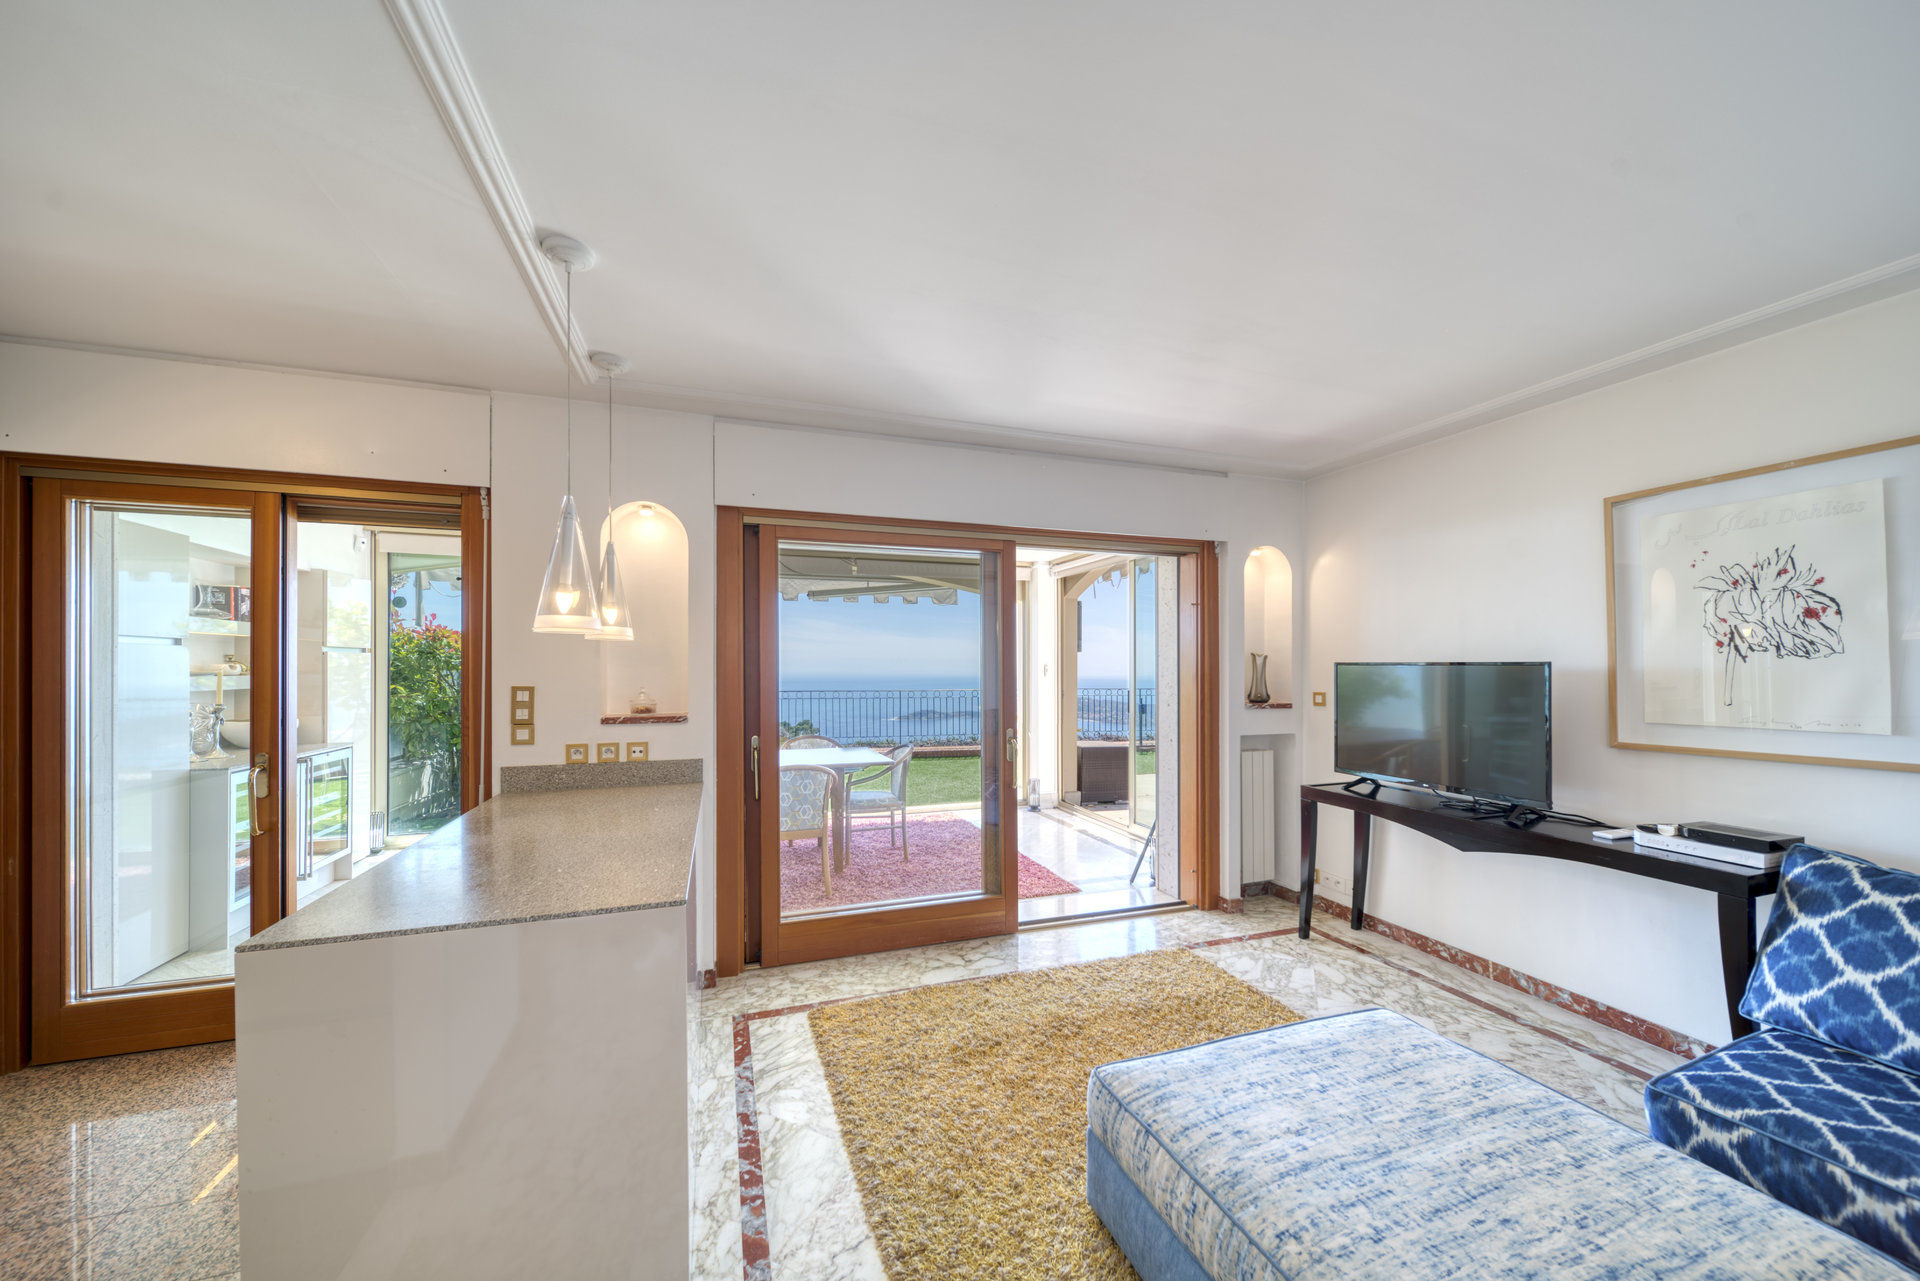 Eze - 3 rooms 78m2 sea view with terrace and garden of 100 m2